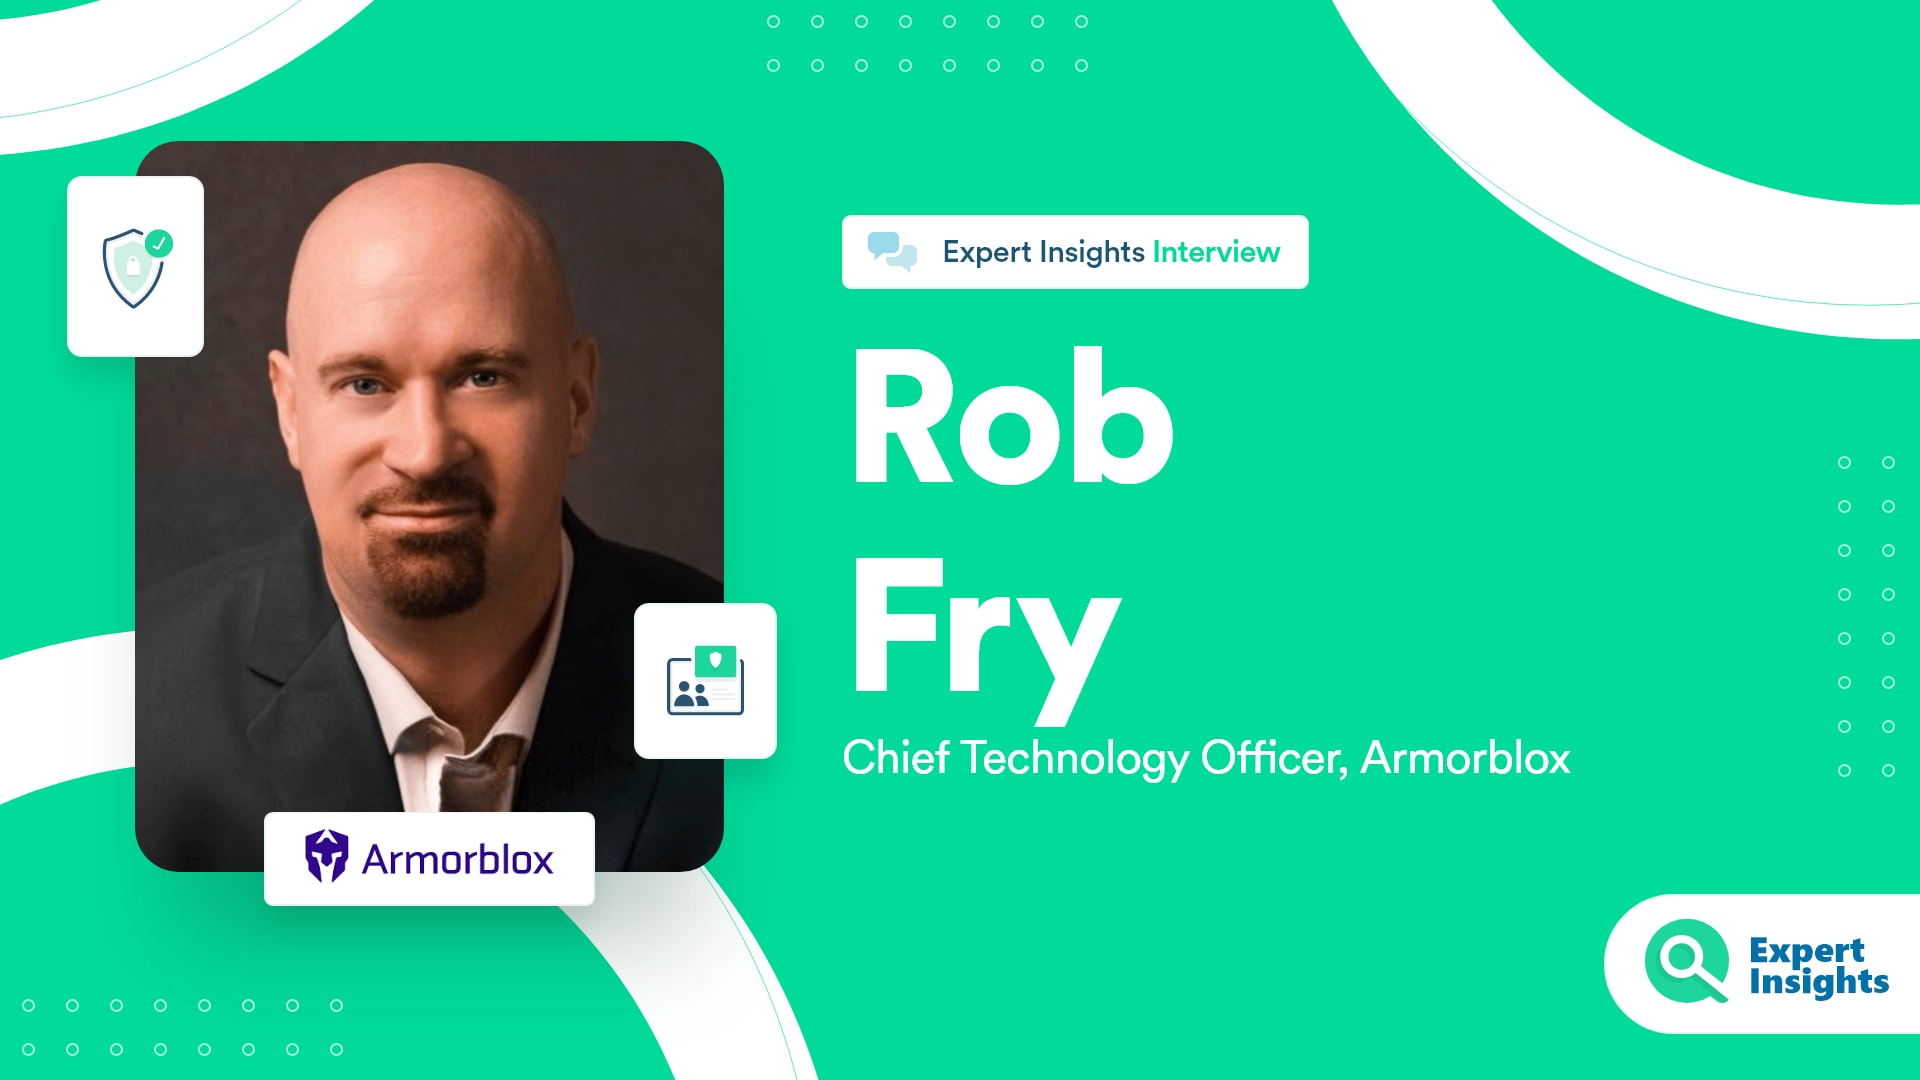 Expert Insights Interview With Rob Fry Of Armorblox